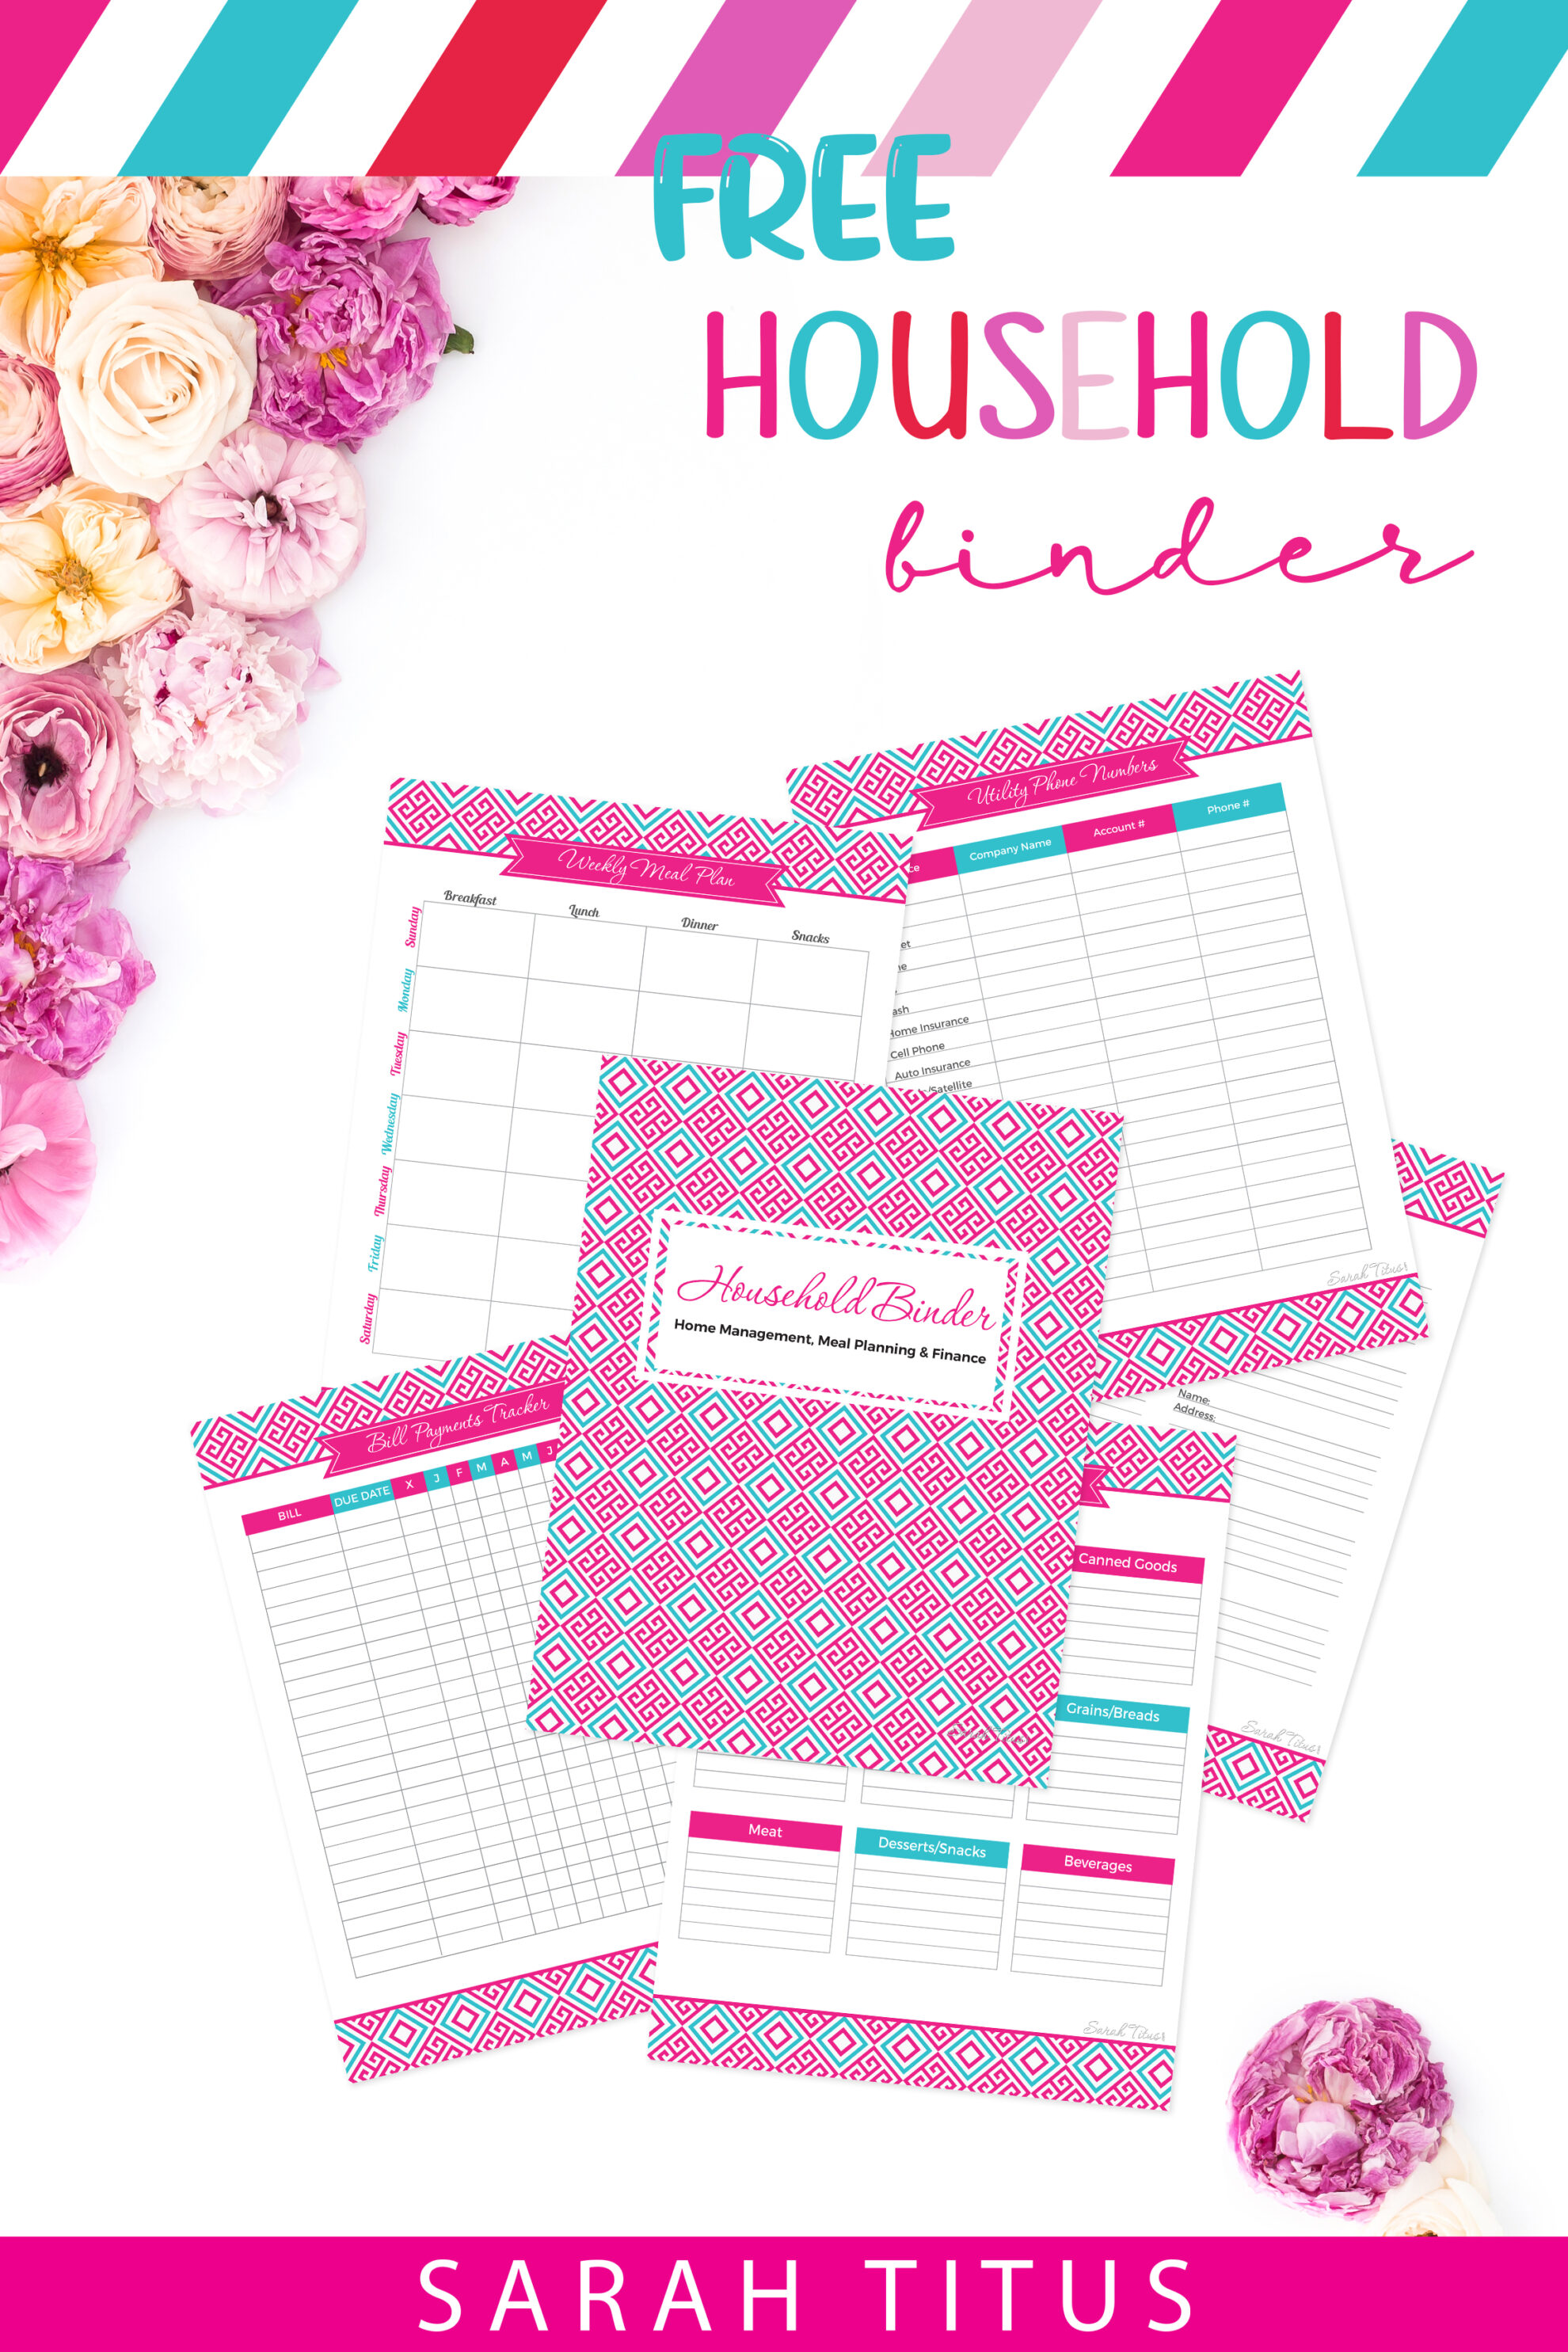 If you're an organization freak like me who just loves having everything all nice and tidy in one spot, this household binder free printables set is for you! #householdbinder #binder #freeprintables #binderprintables #homemakingbinder